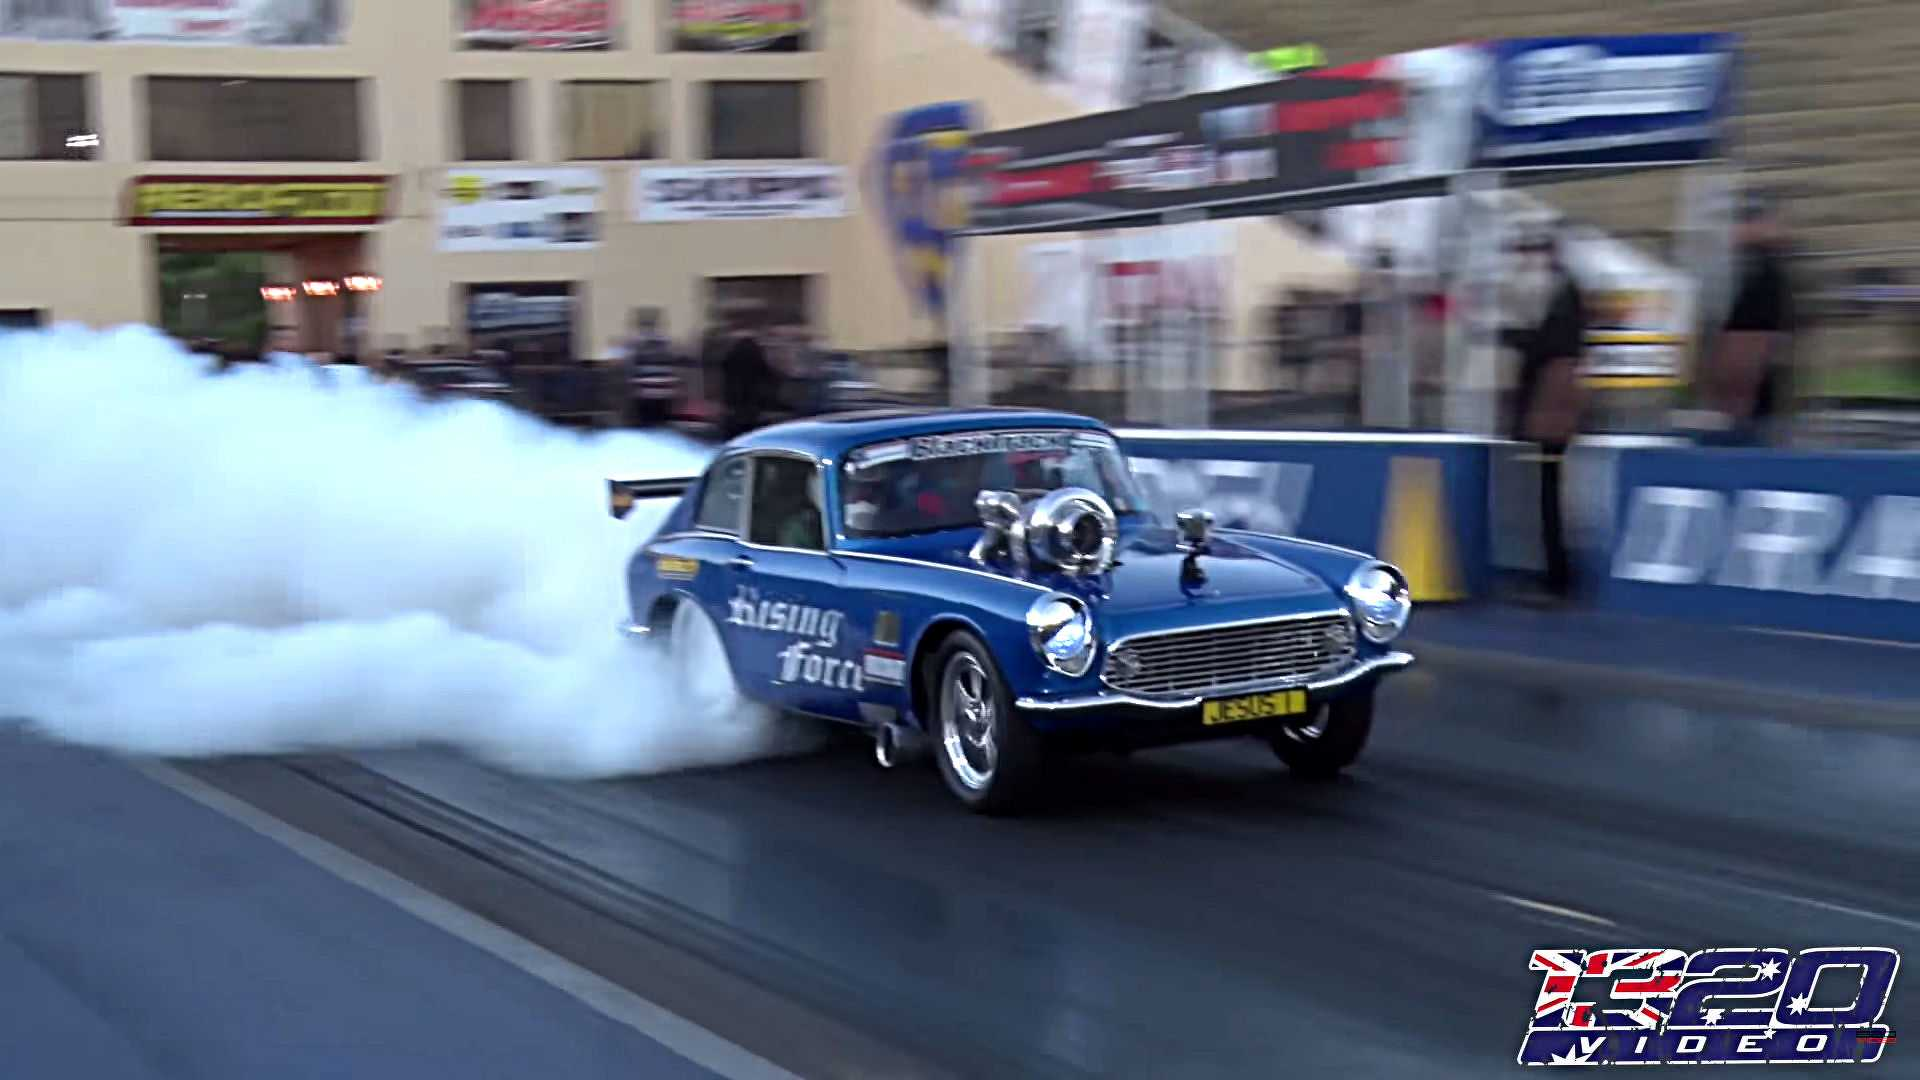 Tiny Honda S600 From Down Under Has Giant Turbo On Top